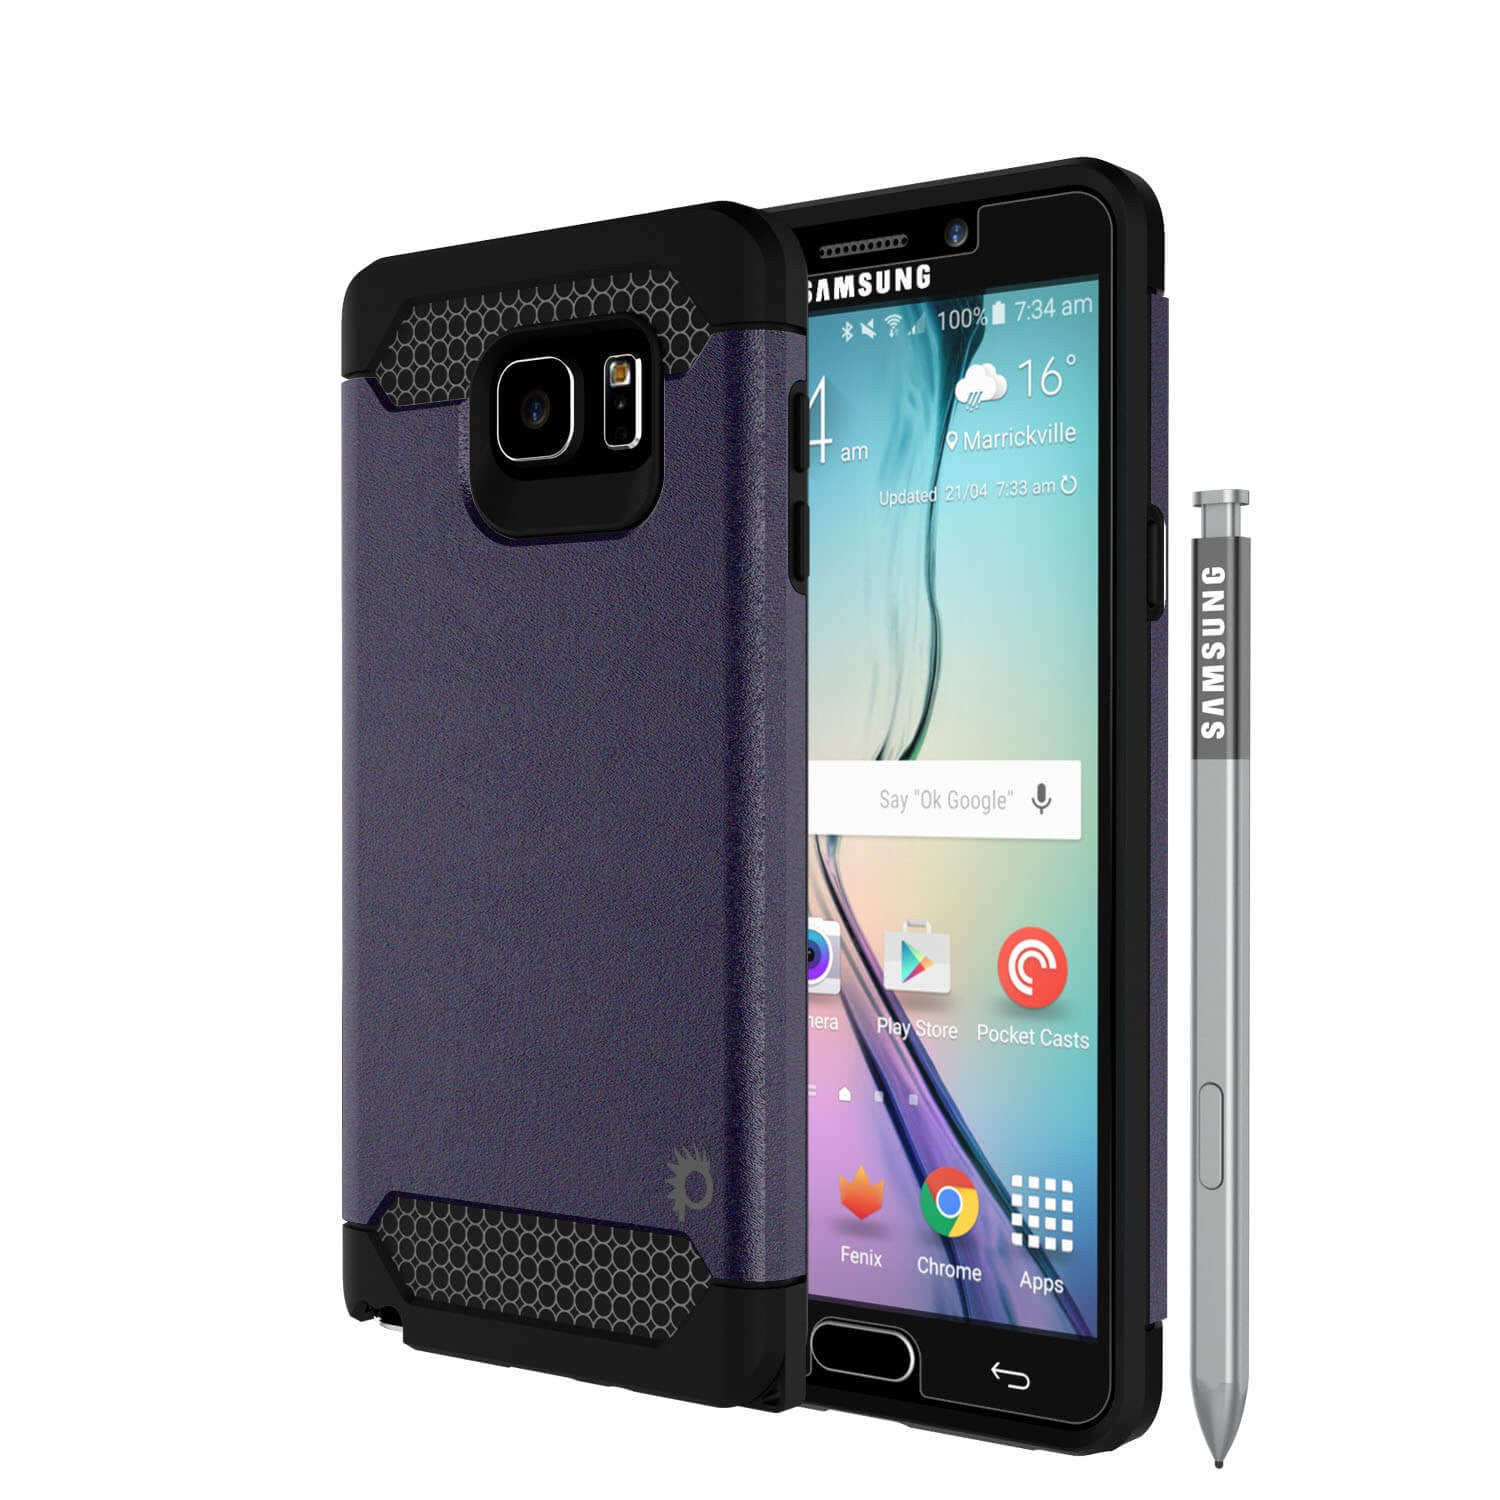 Galaxy Note 5 Case PunkCase Galactic Charcoal Series Slim Armor Soft Cover Case w/ Tempered Glass